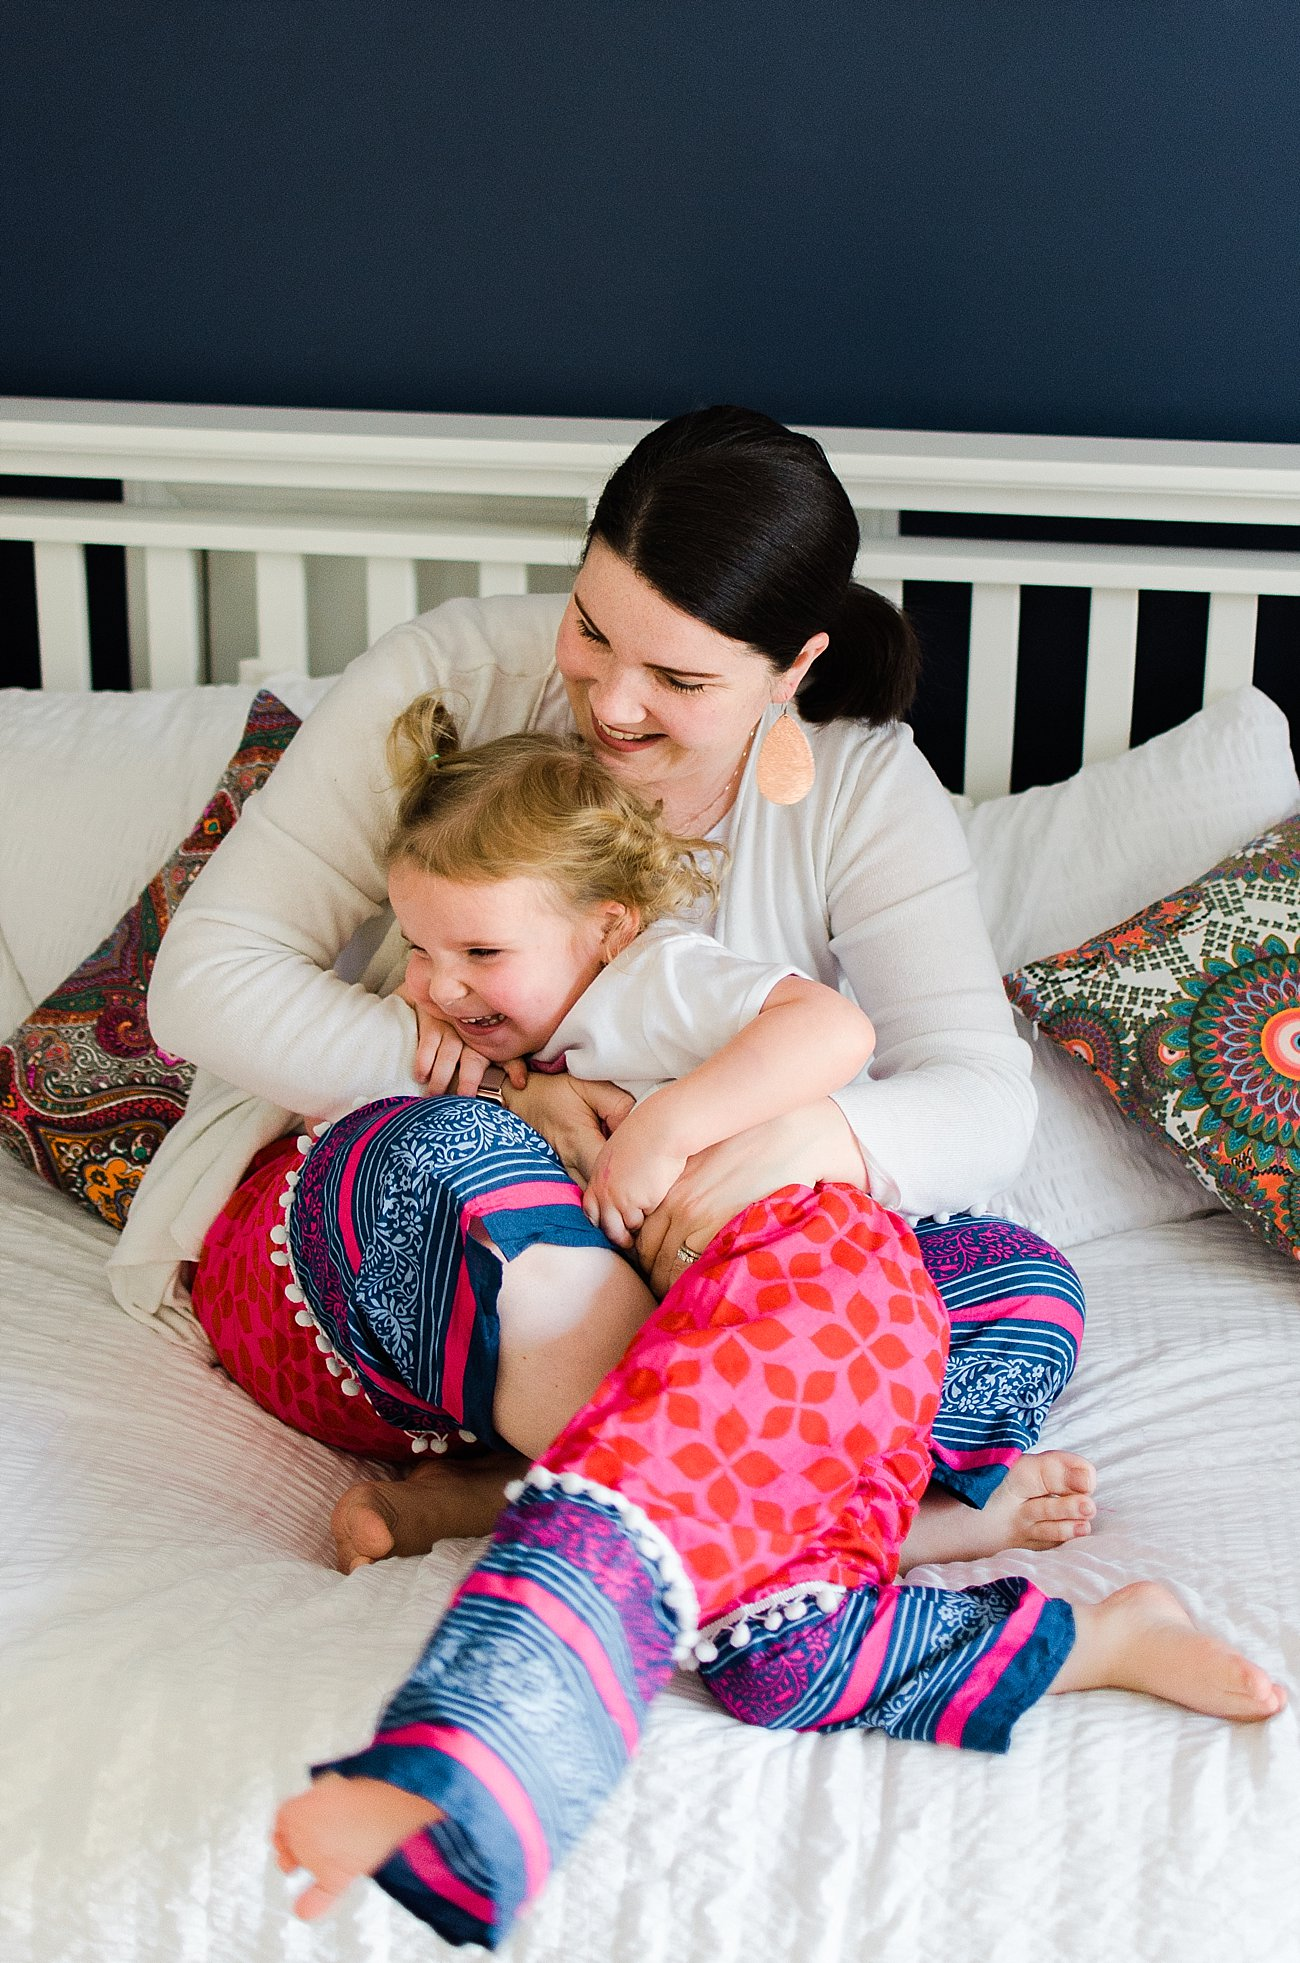 Sudara Goods Mommy & Me Punjammies - Ethical Fashion, Ethically Made Loungewear (5)